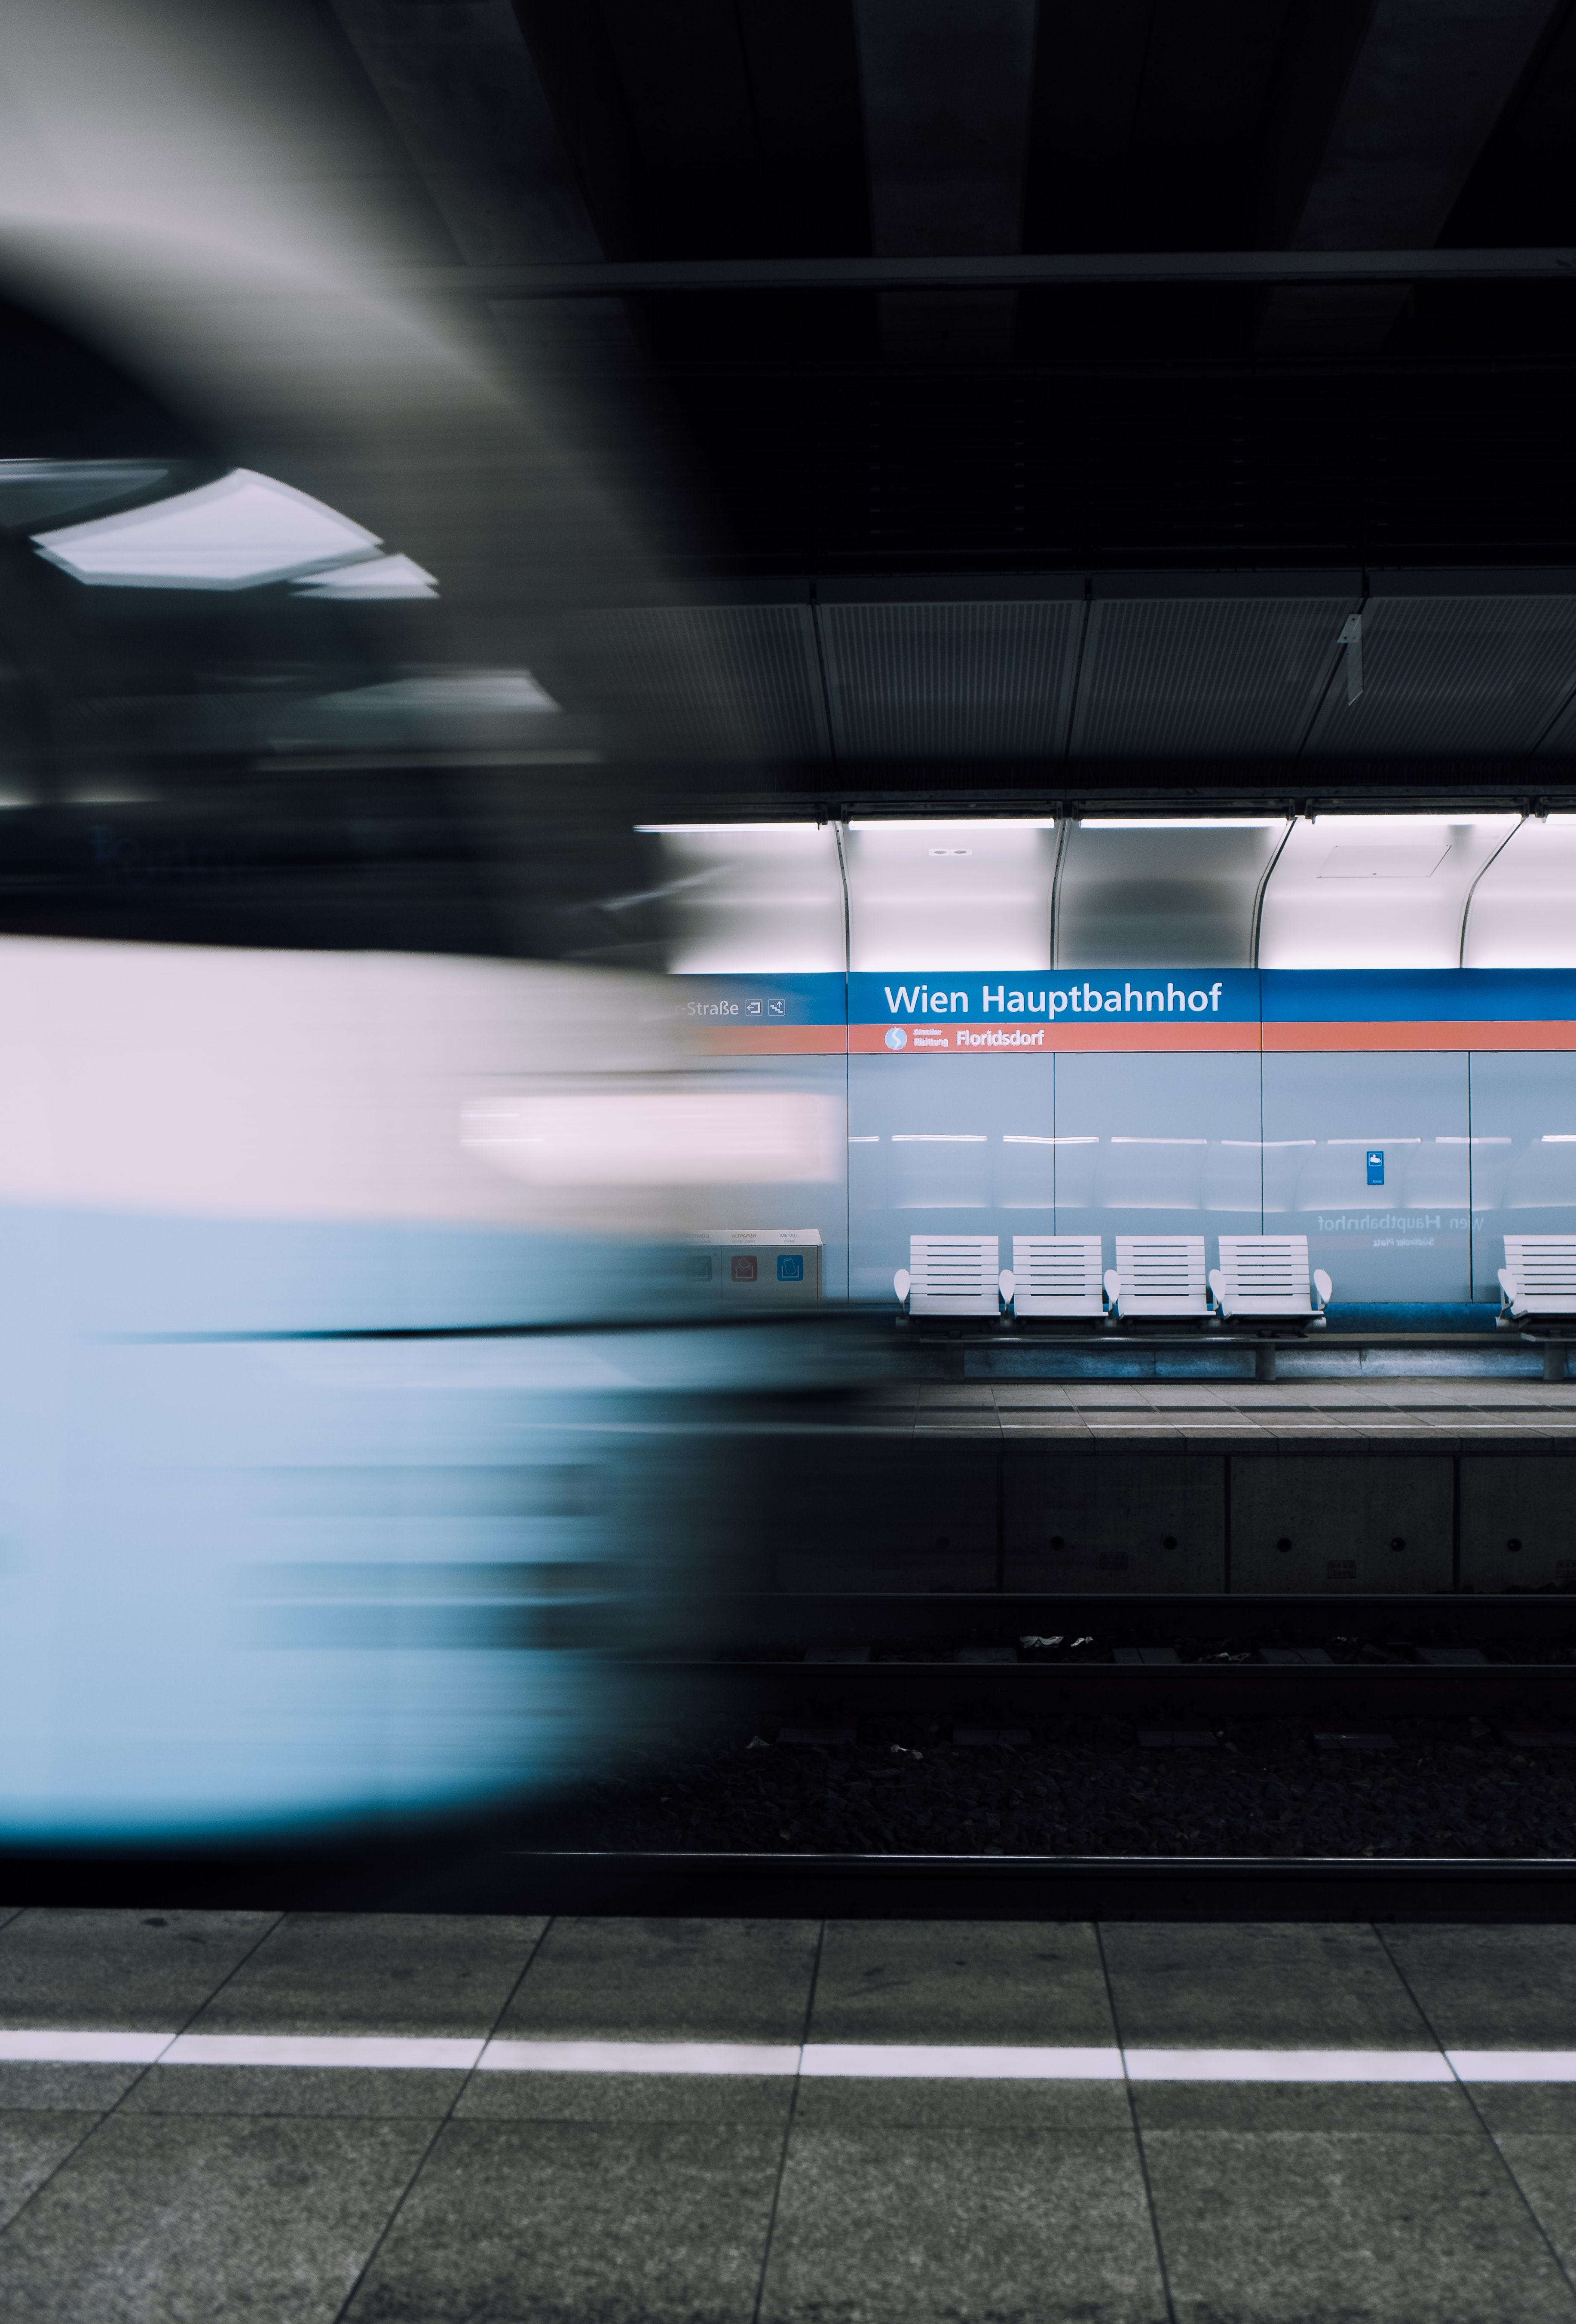 panning photography of train